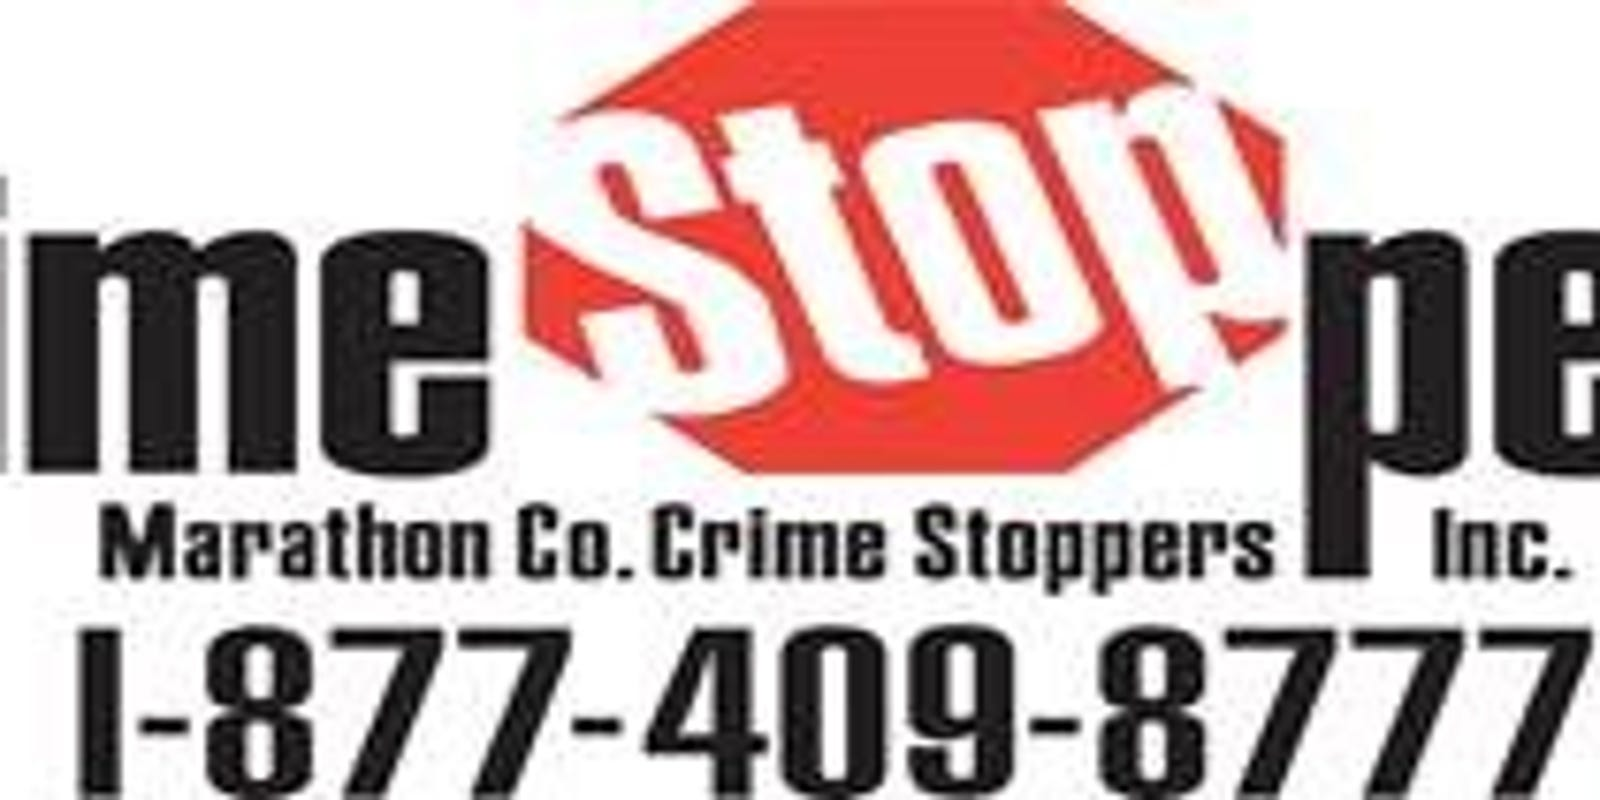 Crime Stoppers: Numerous fraud reports involve iTunes gift cards